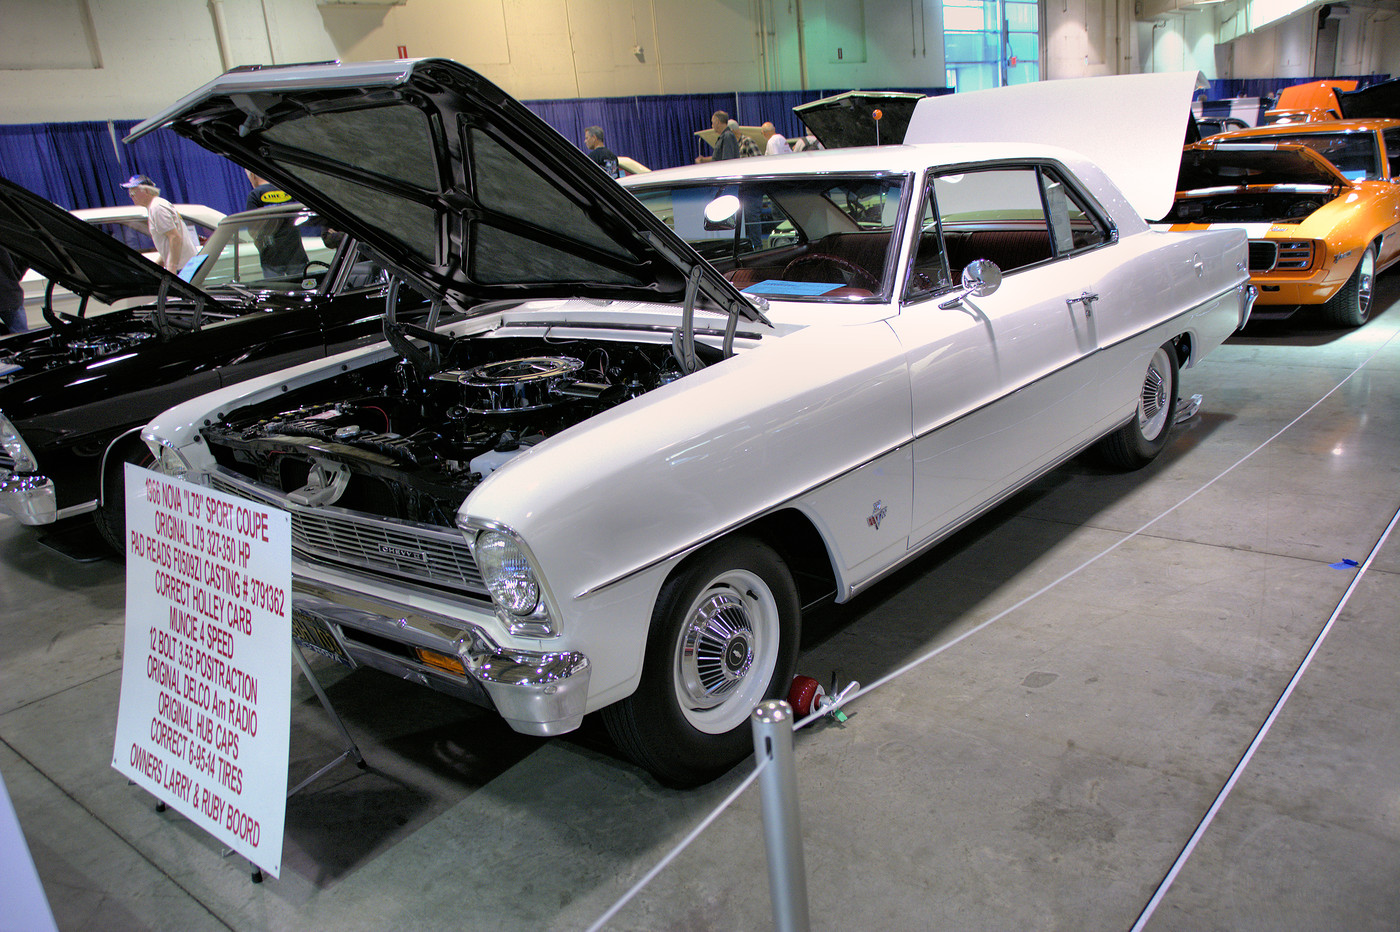 1966 Chevrolet Nova L79 sport coupe owned by Larry and Ruby Boord DSC 4876 -1